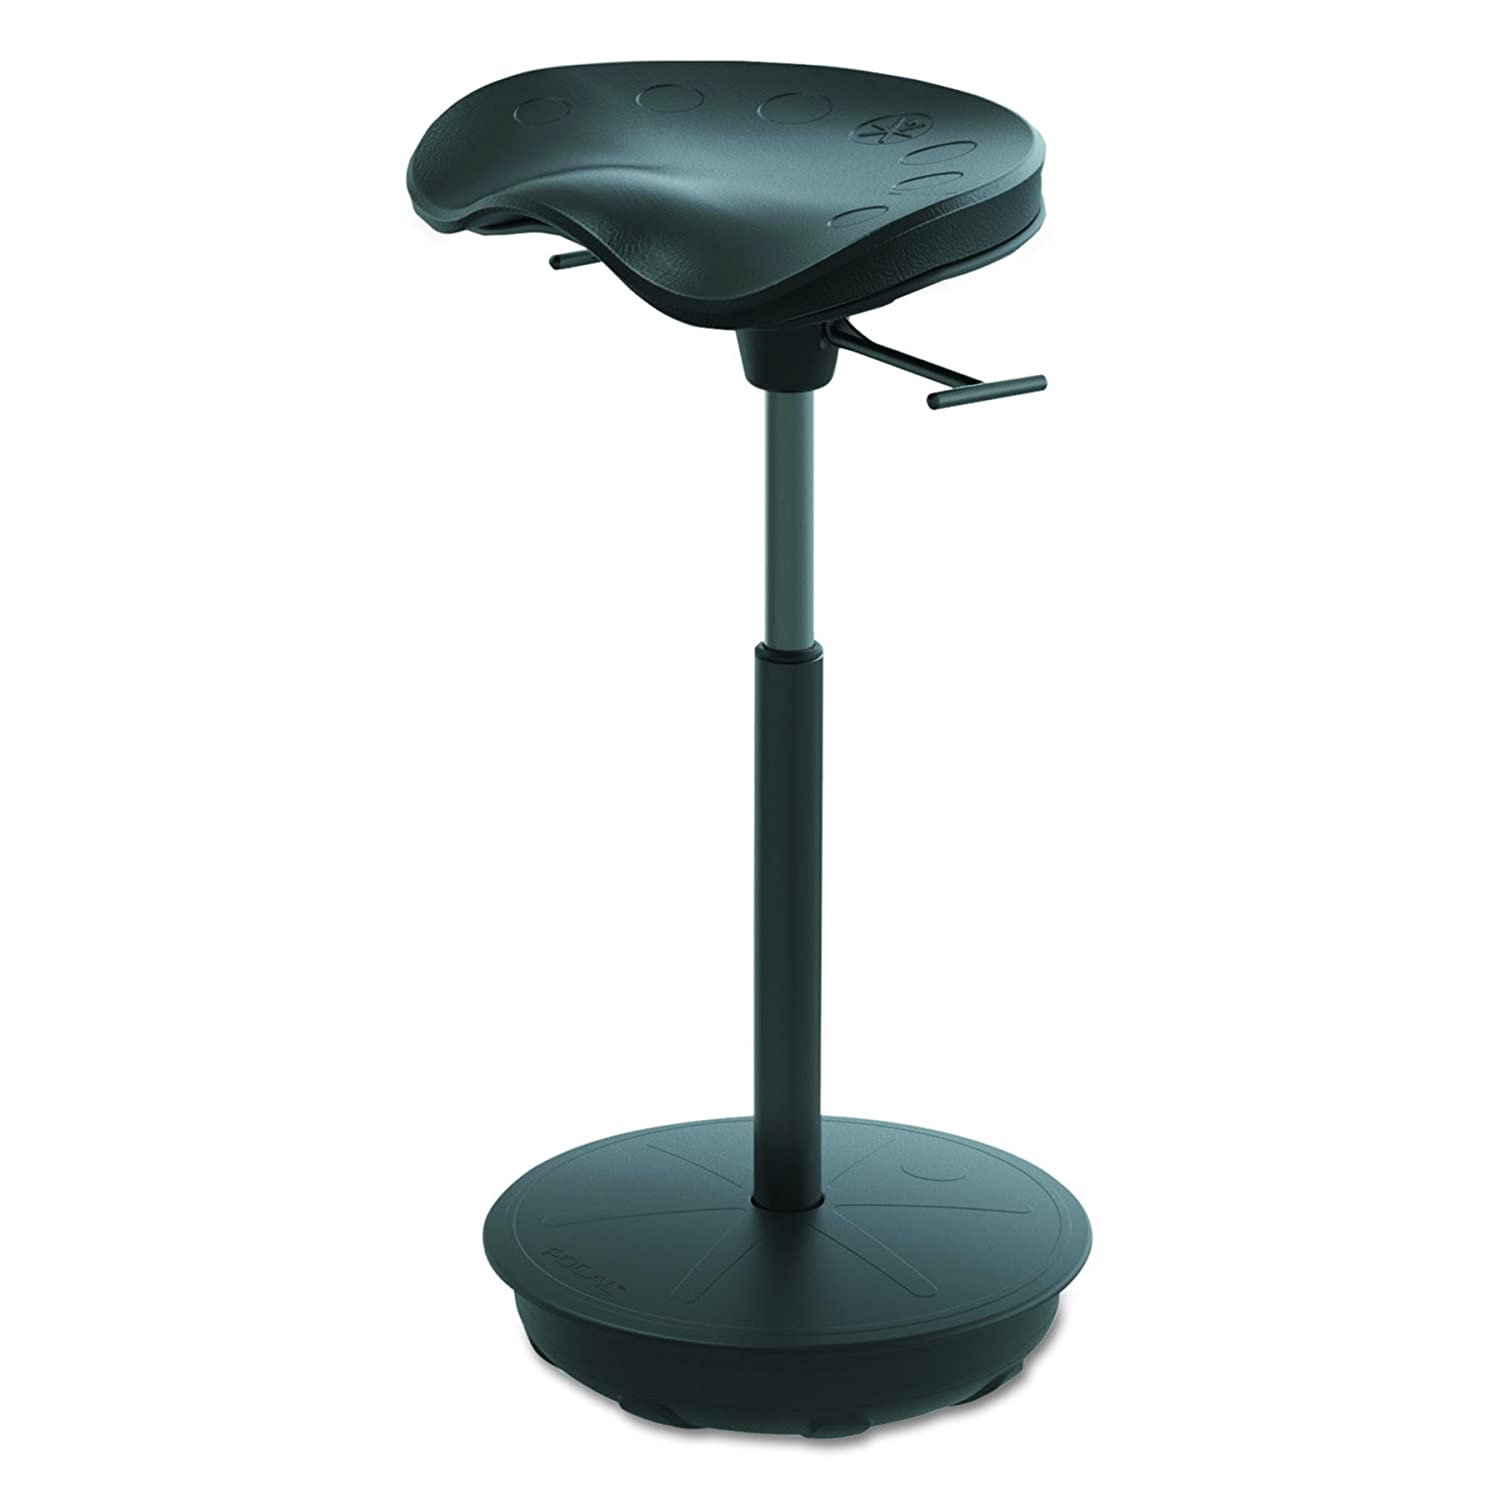 The 9 Best Stand-up Desk Stools - Focal Pivot